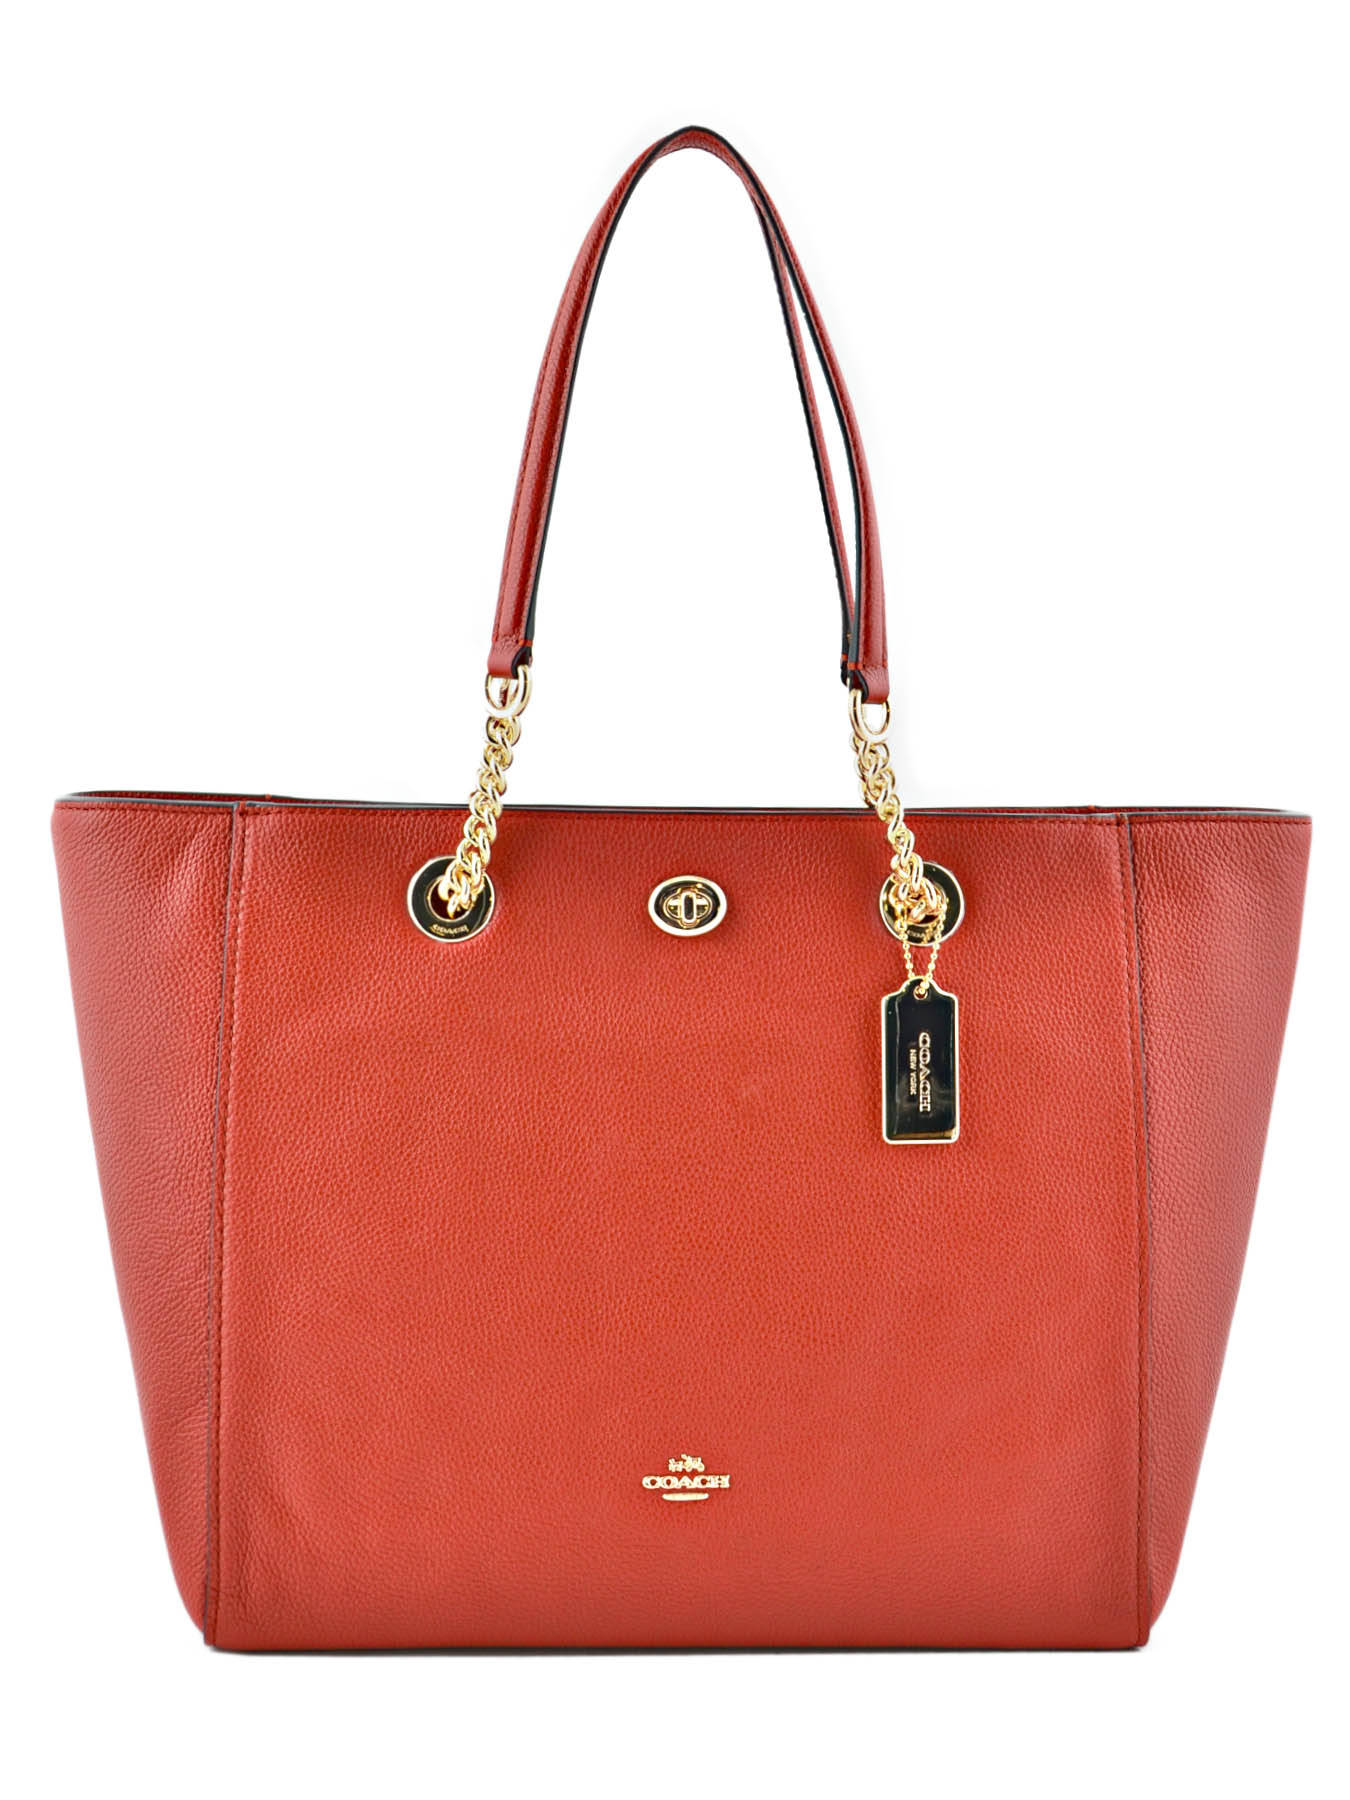 Cabas Turnlock Chain Tote Cuir Coach Rouge tote 56830